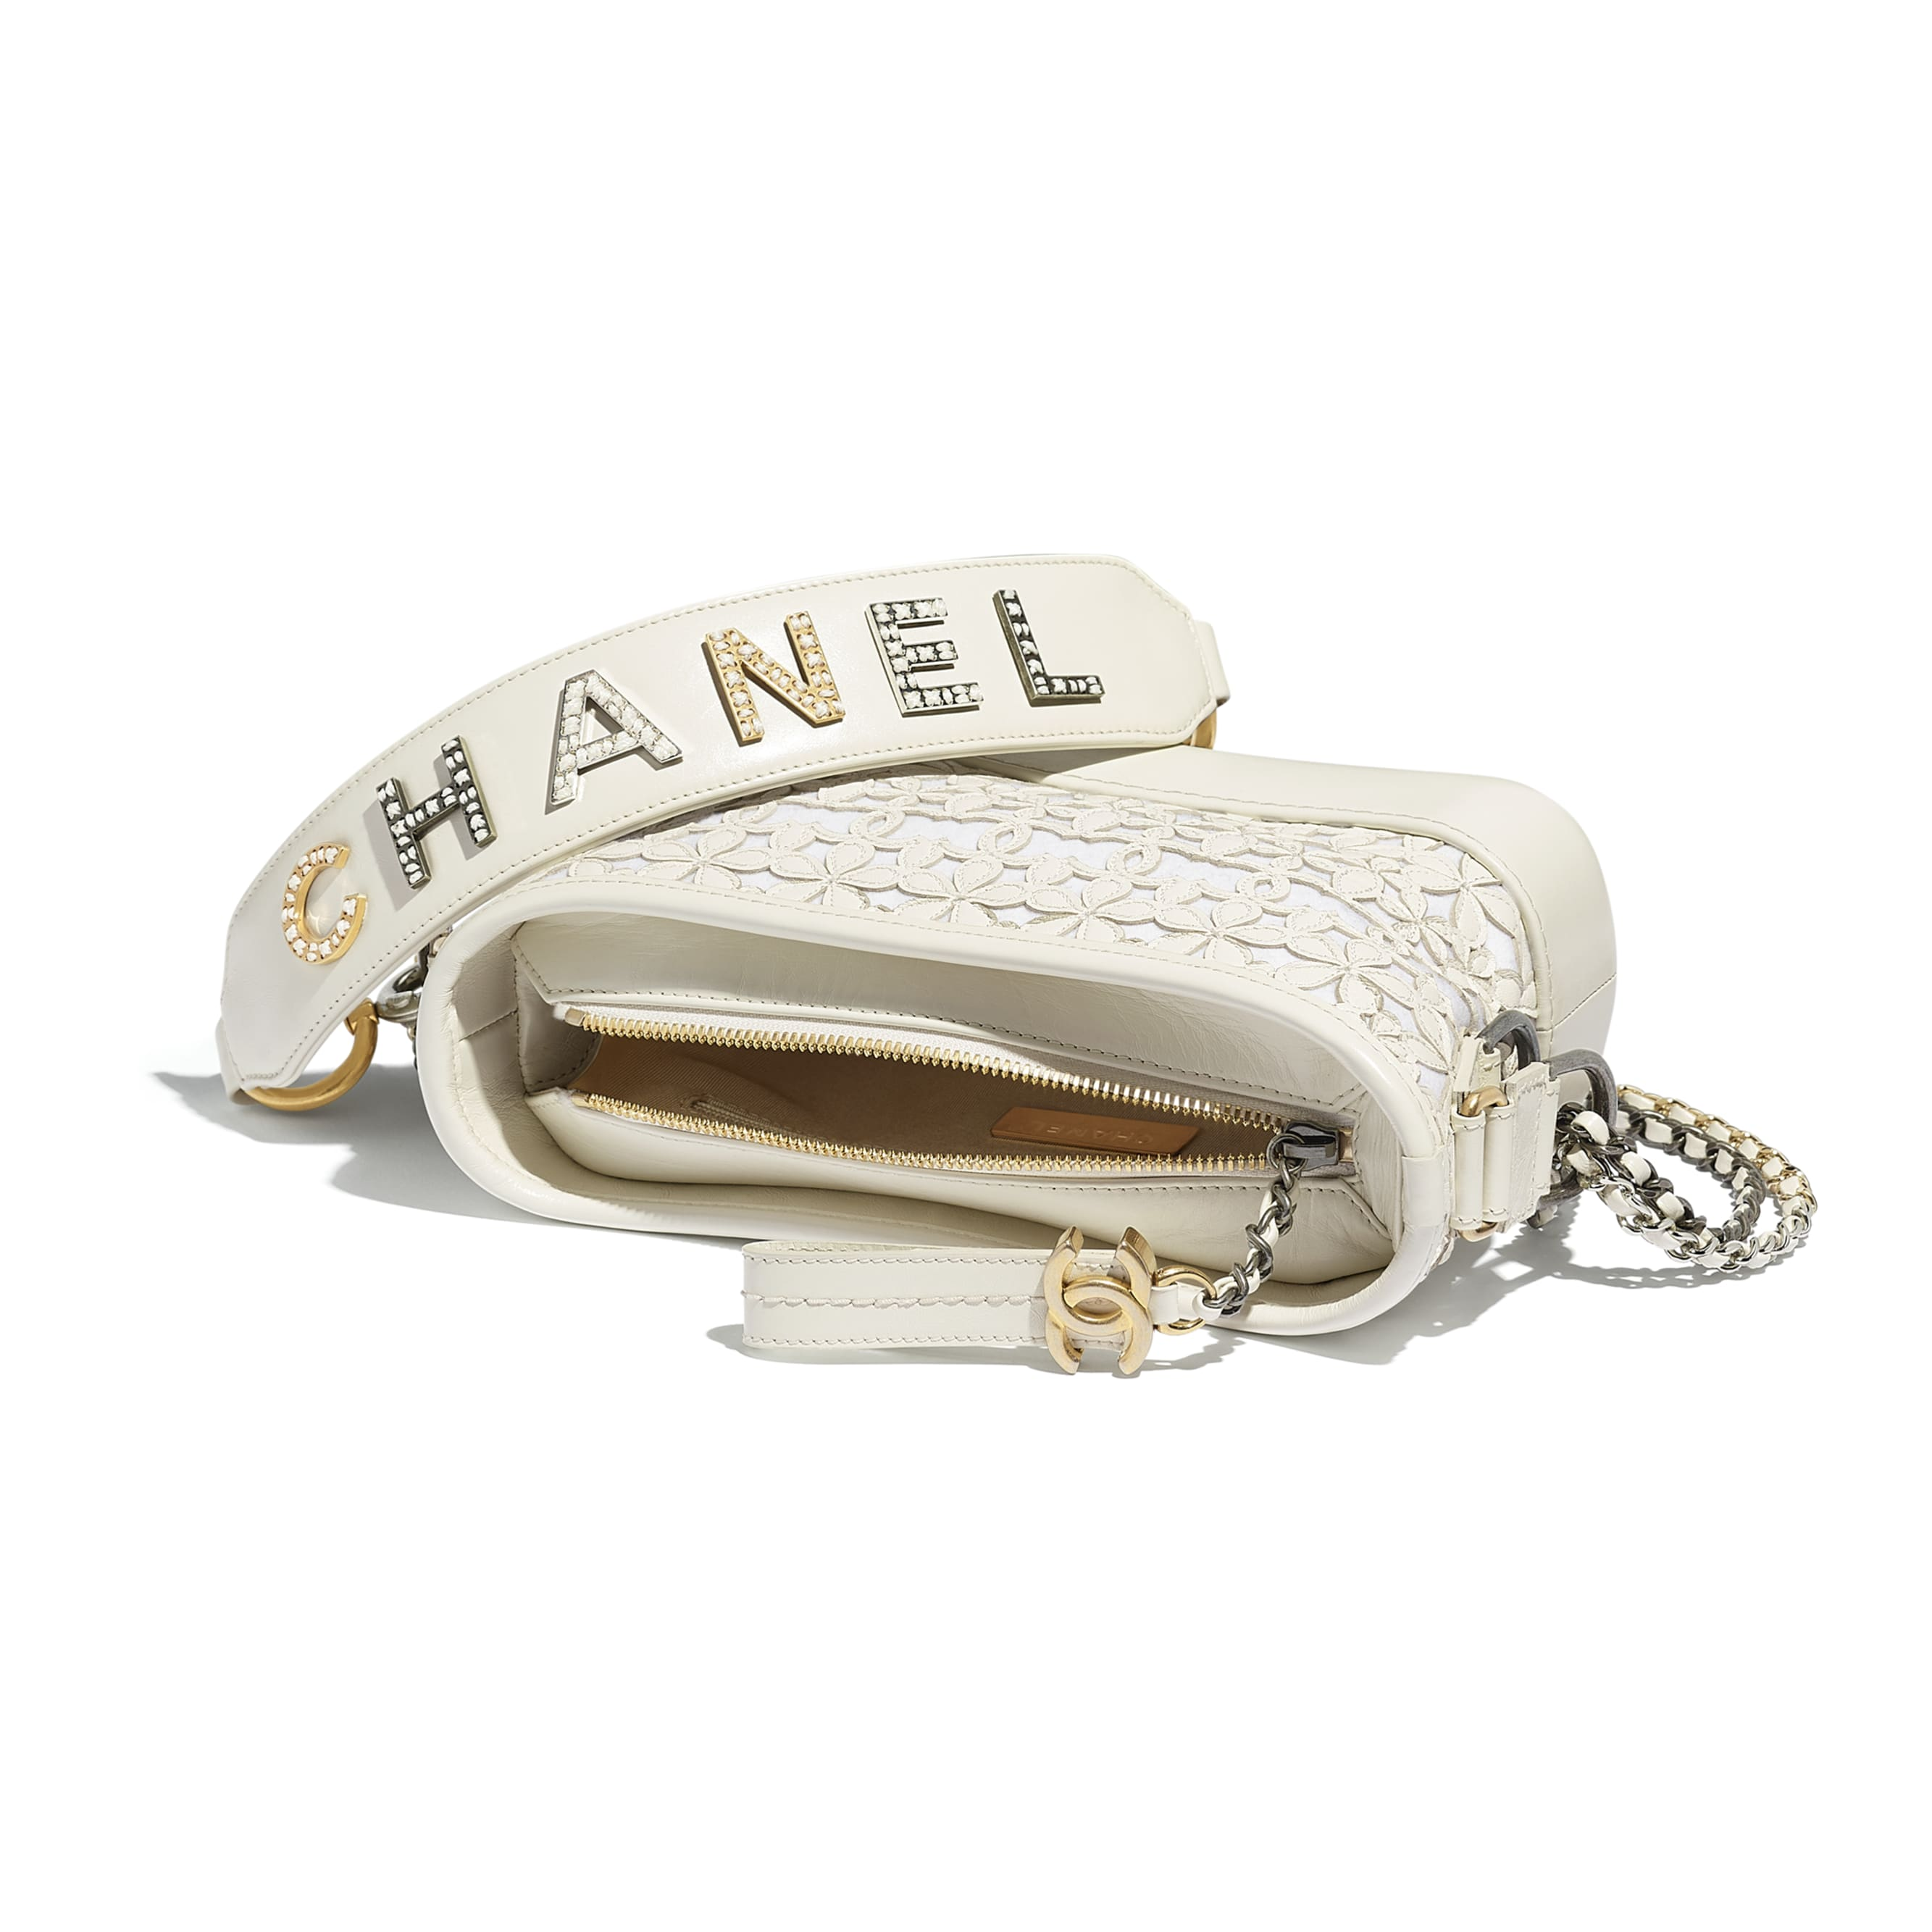 CHANEL'S GABRIELLE Small Hobo Bag - White - Calfskin, Wool Felt, Gold-Tone, Silver-Tone & Ruthenium-Finish Metal - Other view - see standard sized version